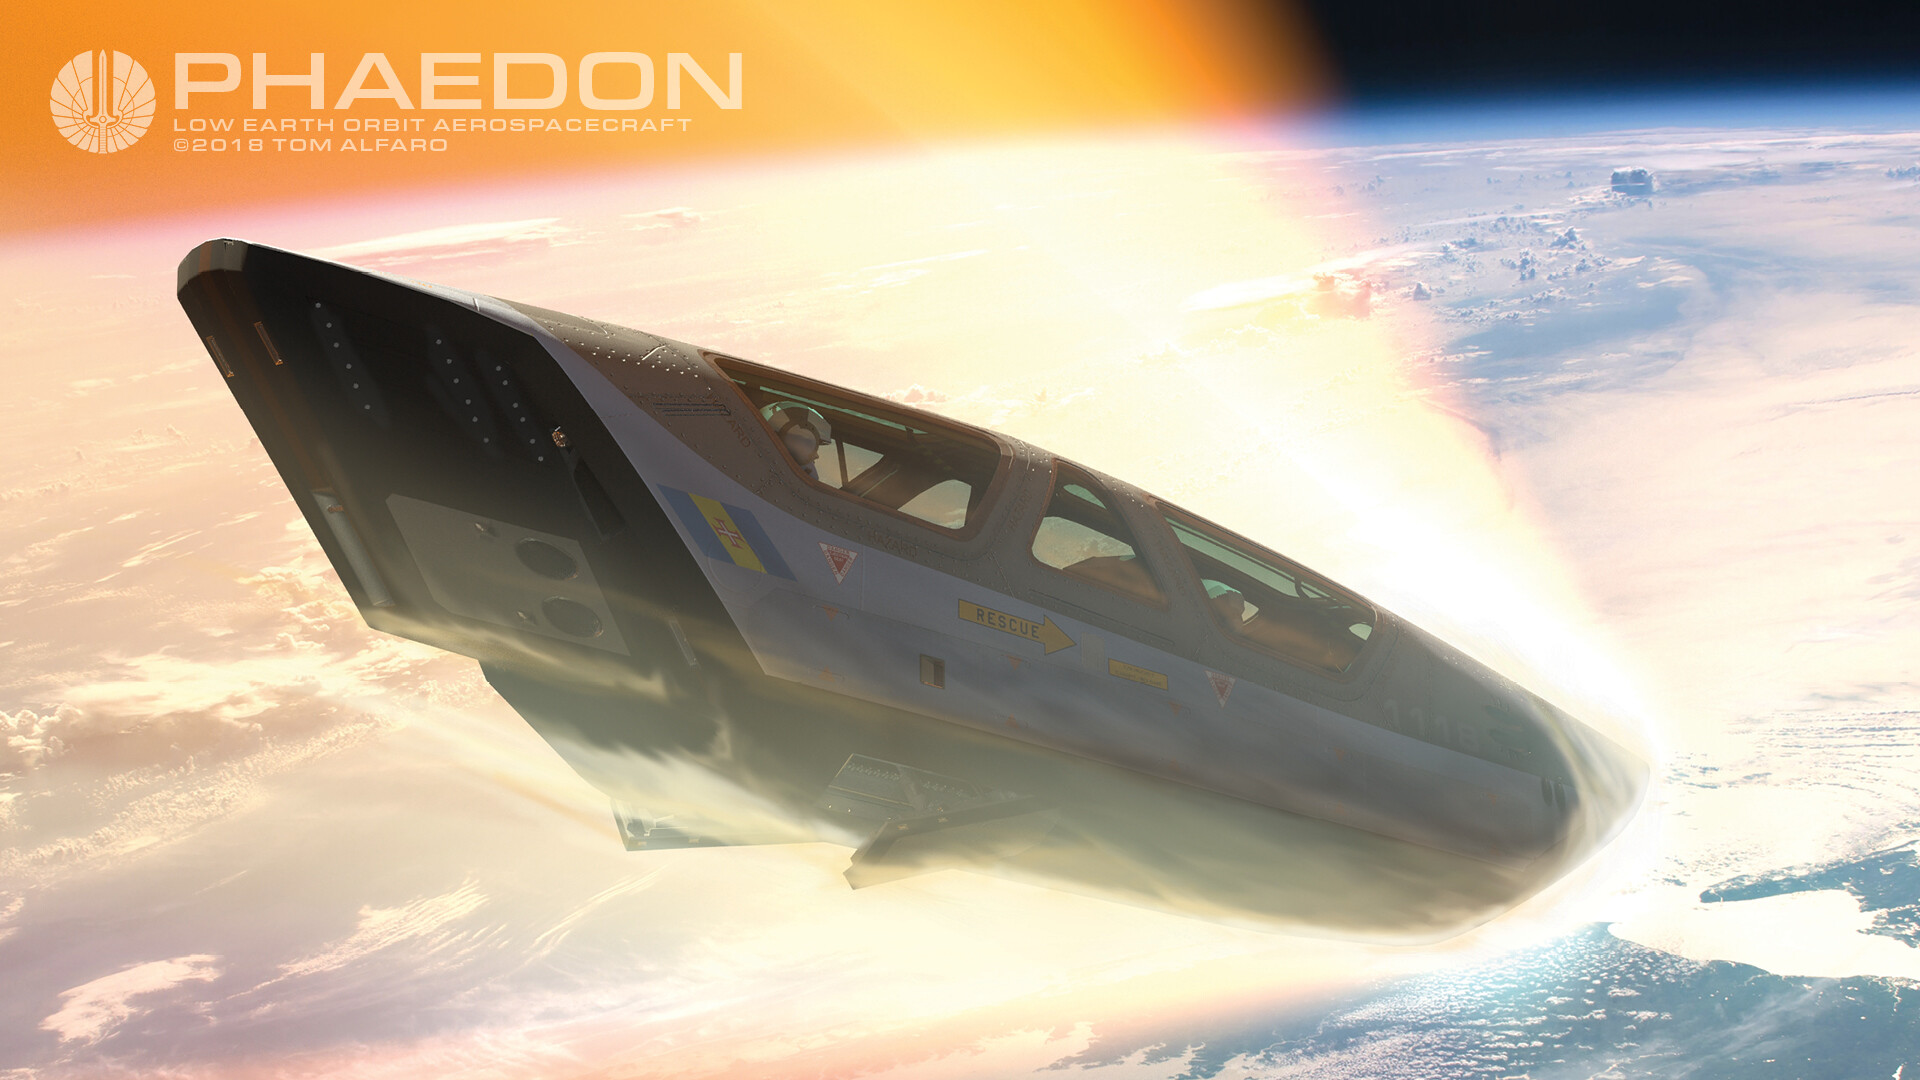 Phaedon crew escape module entering the upper atmosphere at very high speed.  Lower surface of the escape module protects crew from ballistic hazards (exploding main fuselage) as well as high temperatures and pressures of atmospheric reentry.